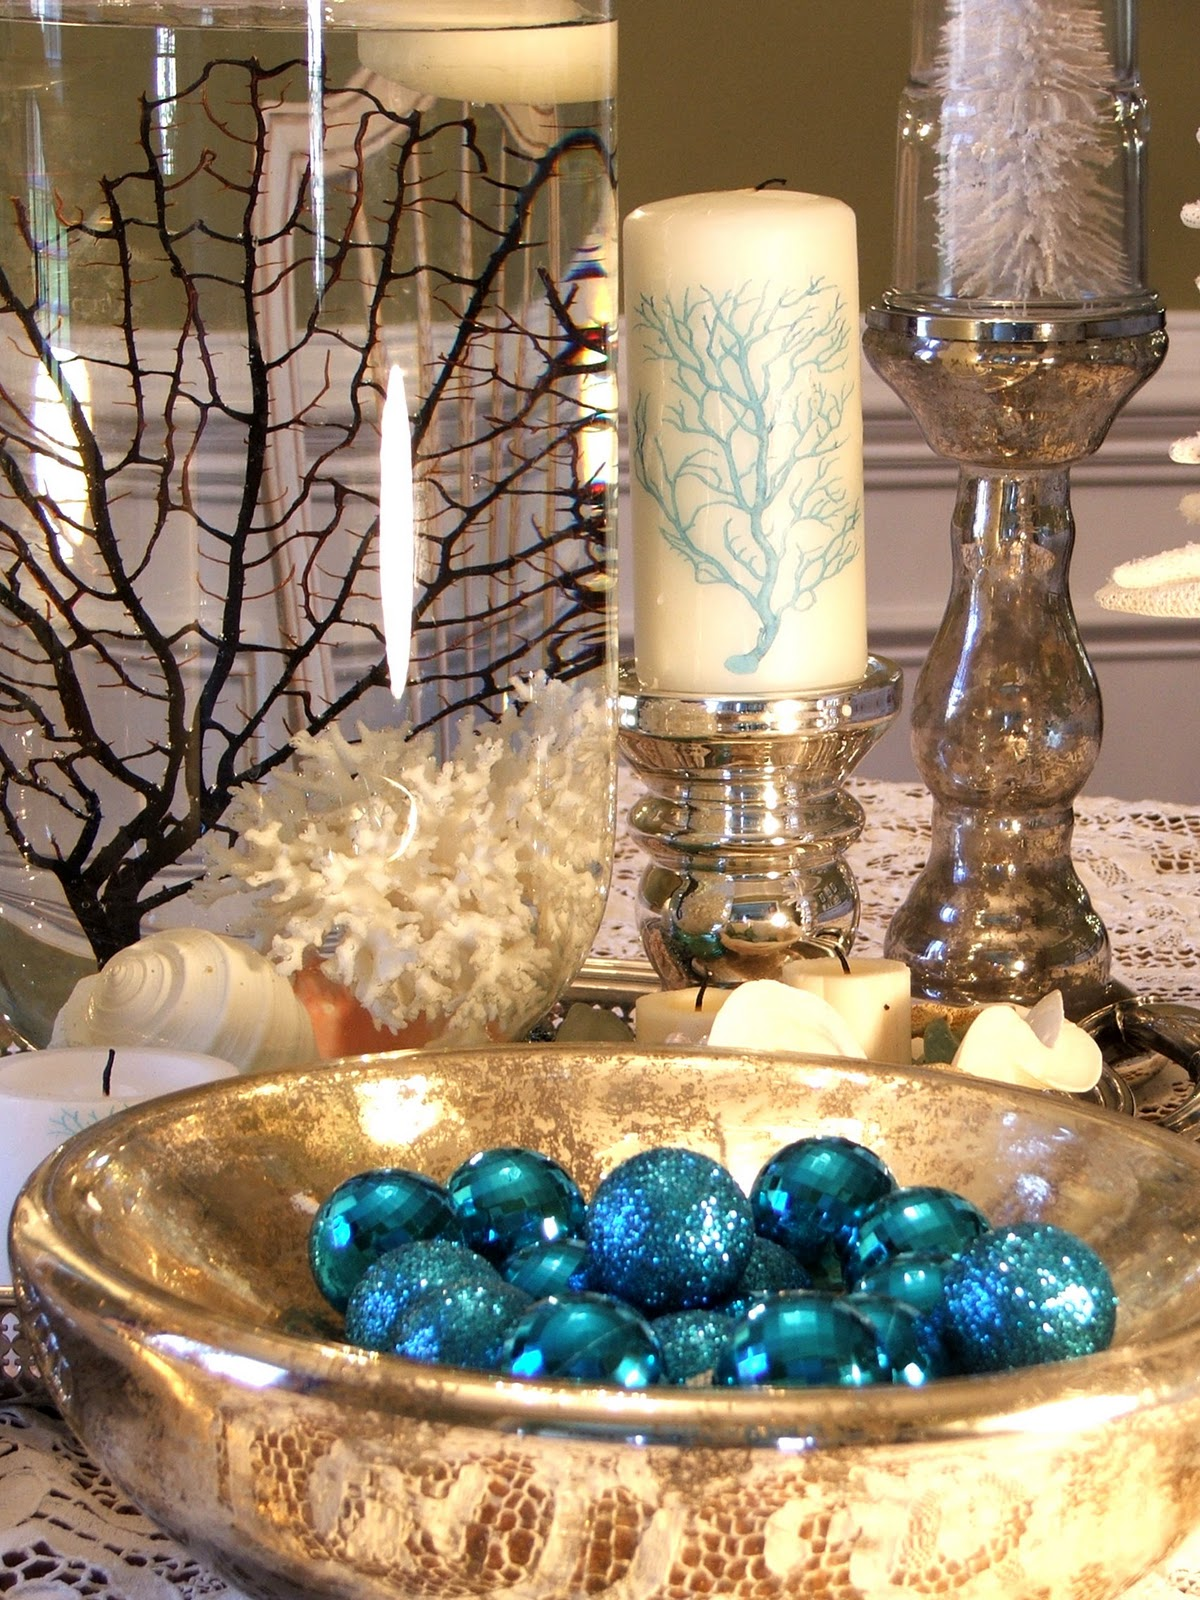 bhg - Beach Christmas Decorating Ideas